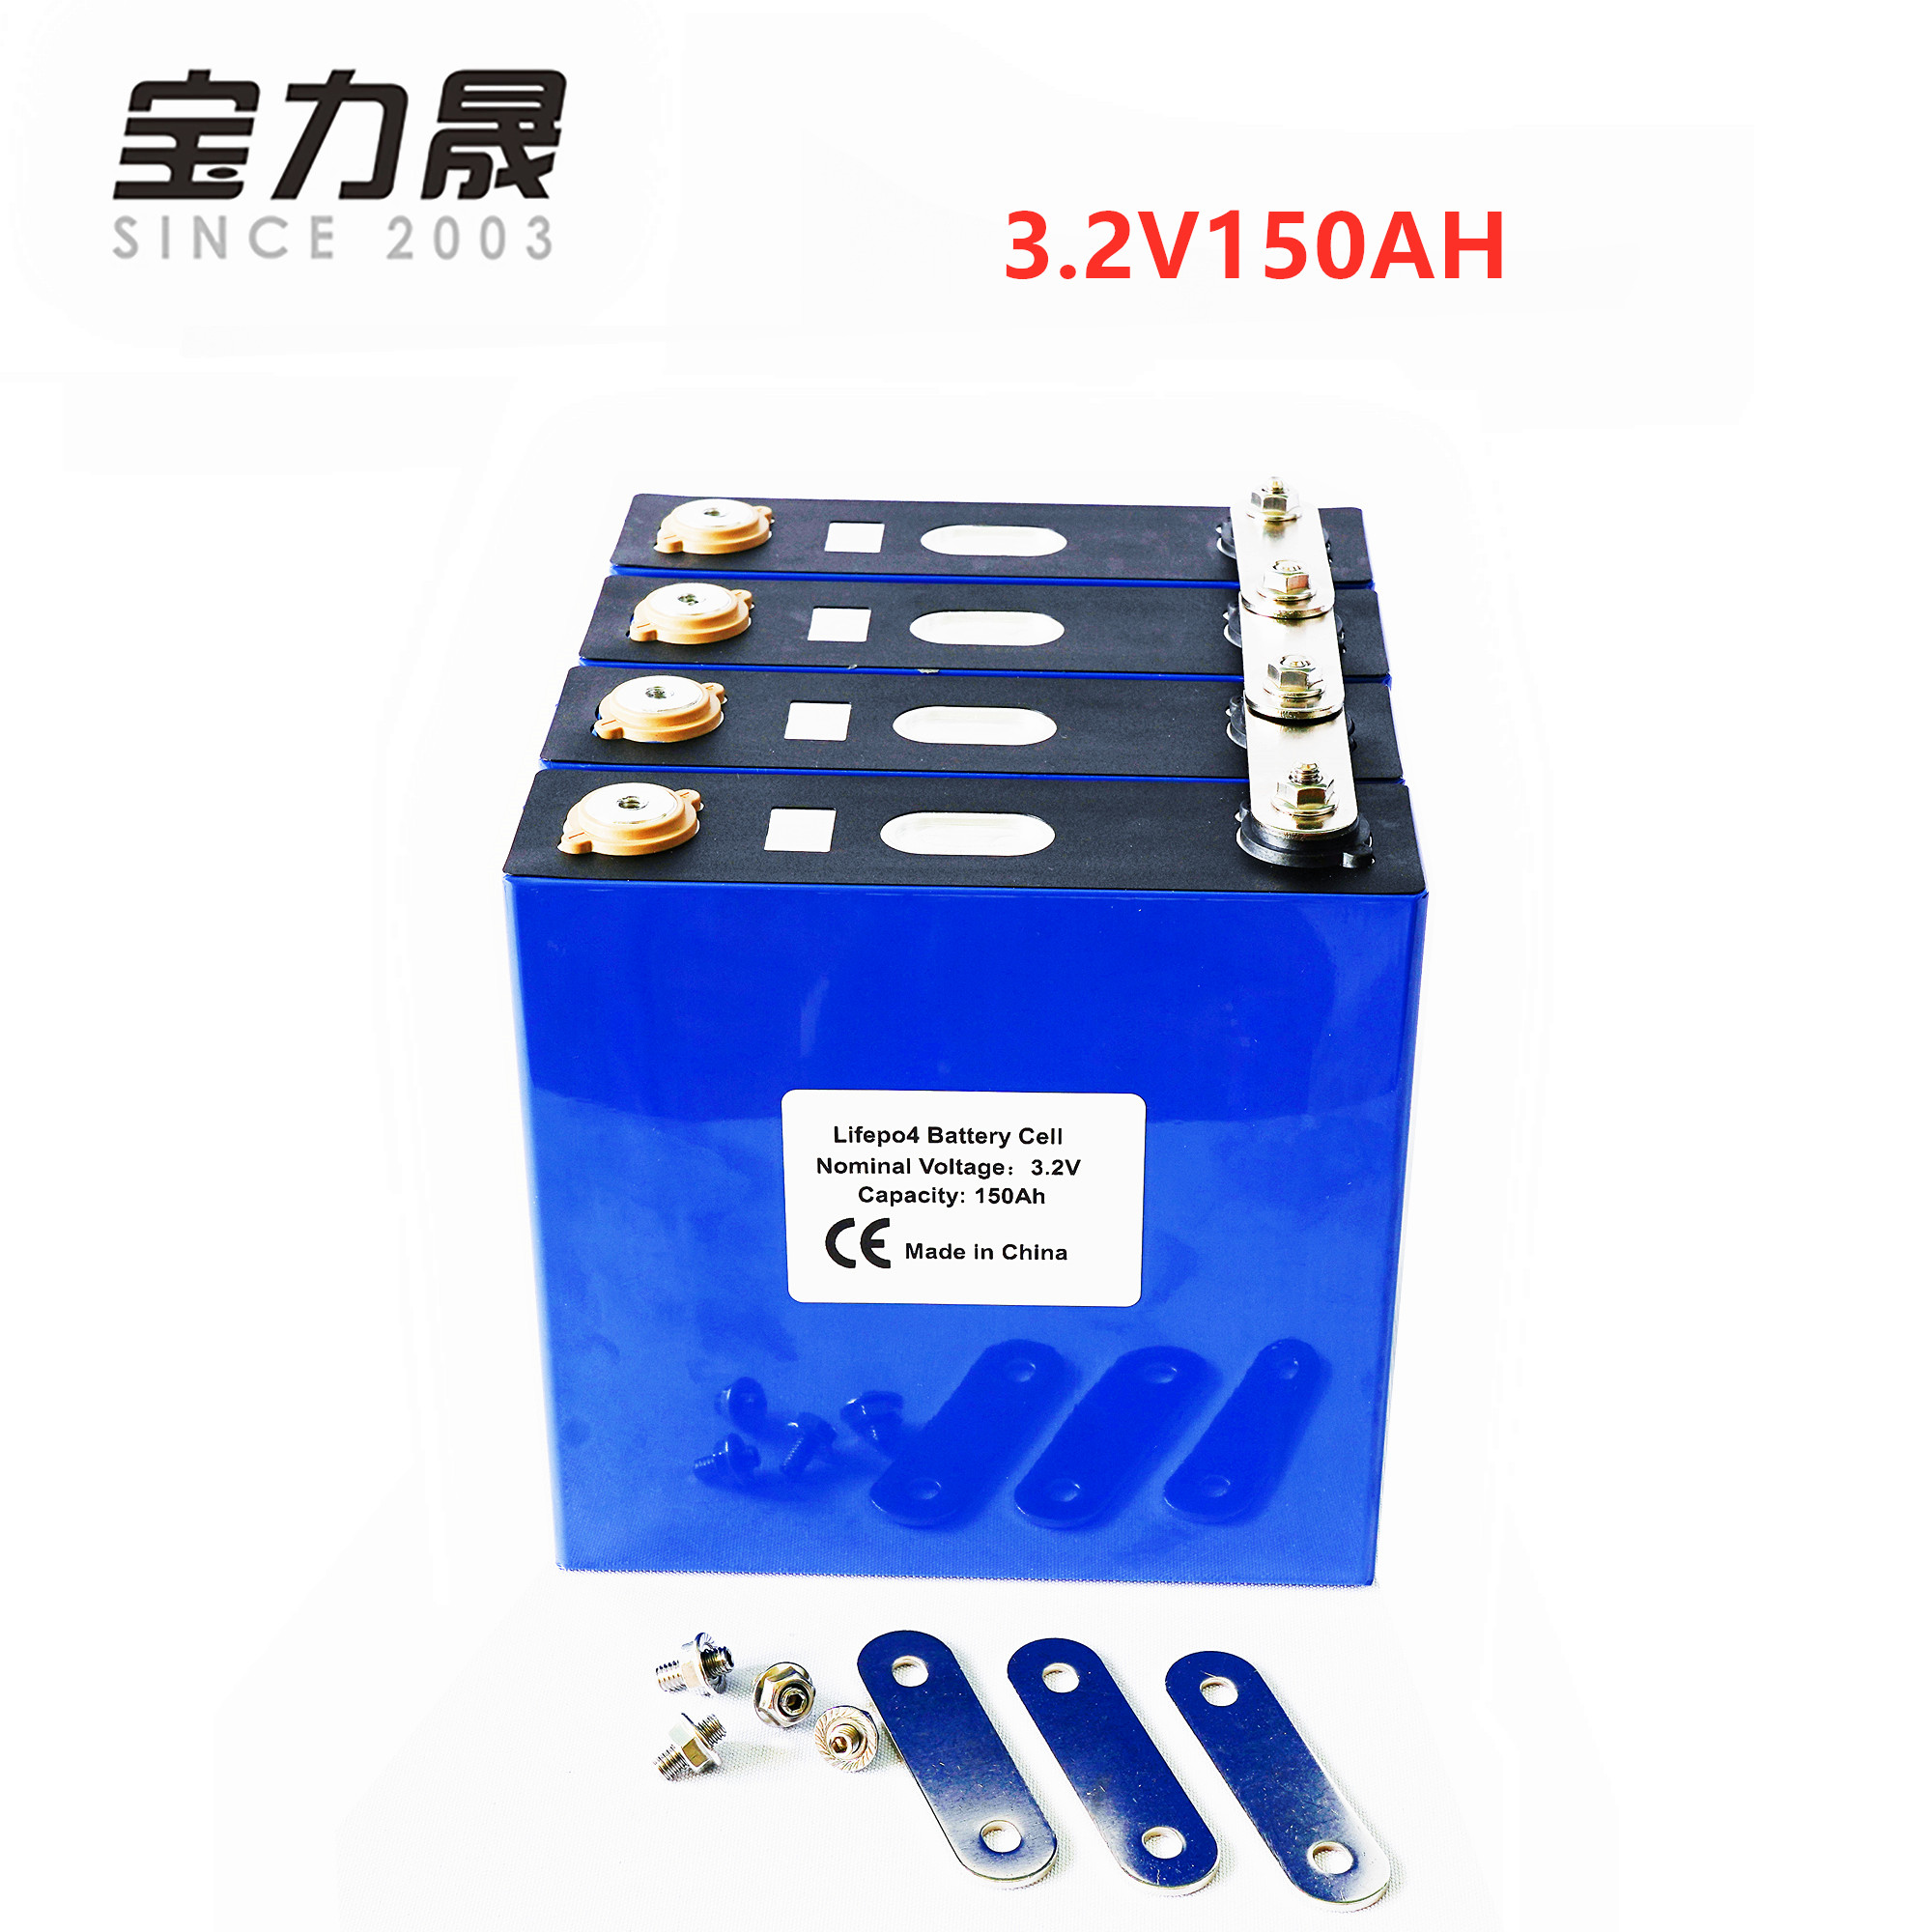 EU US TAX FREE 4PCS 3.2V <font><b>150Ah</b></font> Lithium Iron Phosphate Cell <font><b>lifepo4</b></font> battery Cycle 4000 Times 3C Solar <font><b>12V</b></font> <font><b>150Ah</b></font> cells not 120Ah image